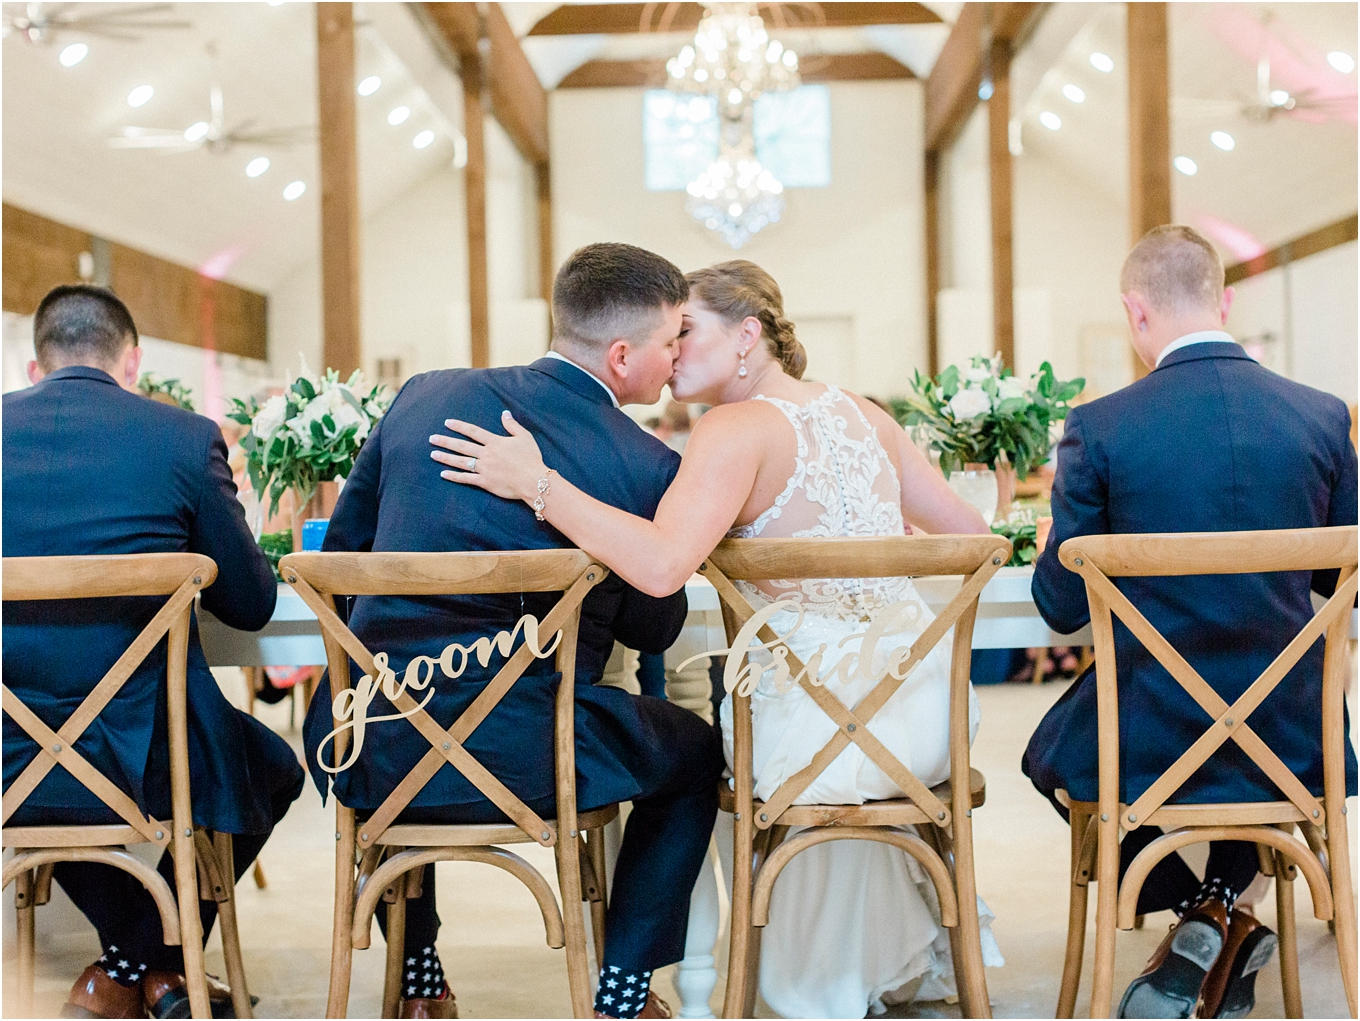 Lisa Silva Photography- Ponte Vedra Beach, St. Augustine and Jacksonville, Florida Fine Art Film Wedding and Boudoir Photography- Elegant Blush and Navy Wedding at Chandler Oaks Barn in St. Augustine, Florida_0112.jpg